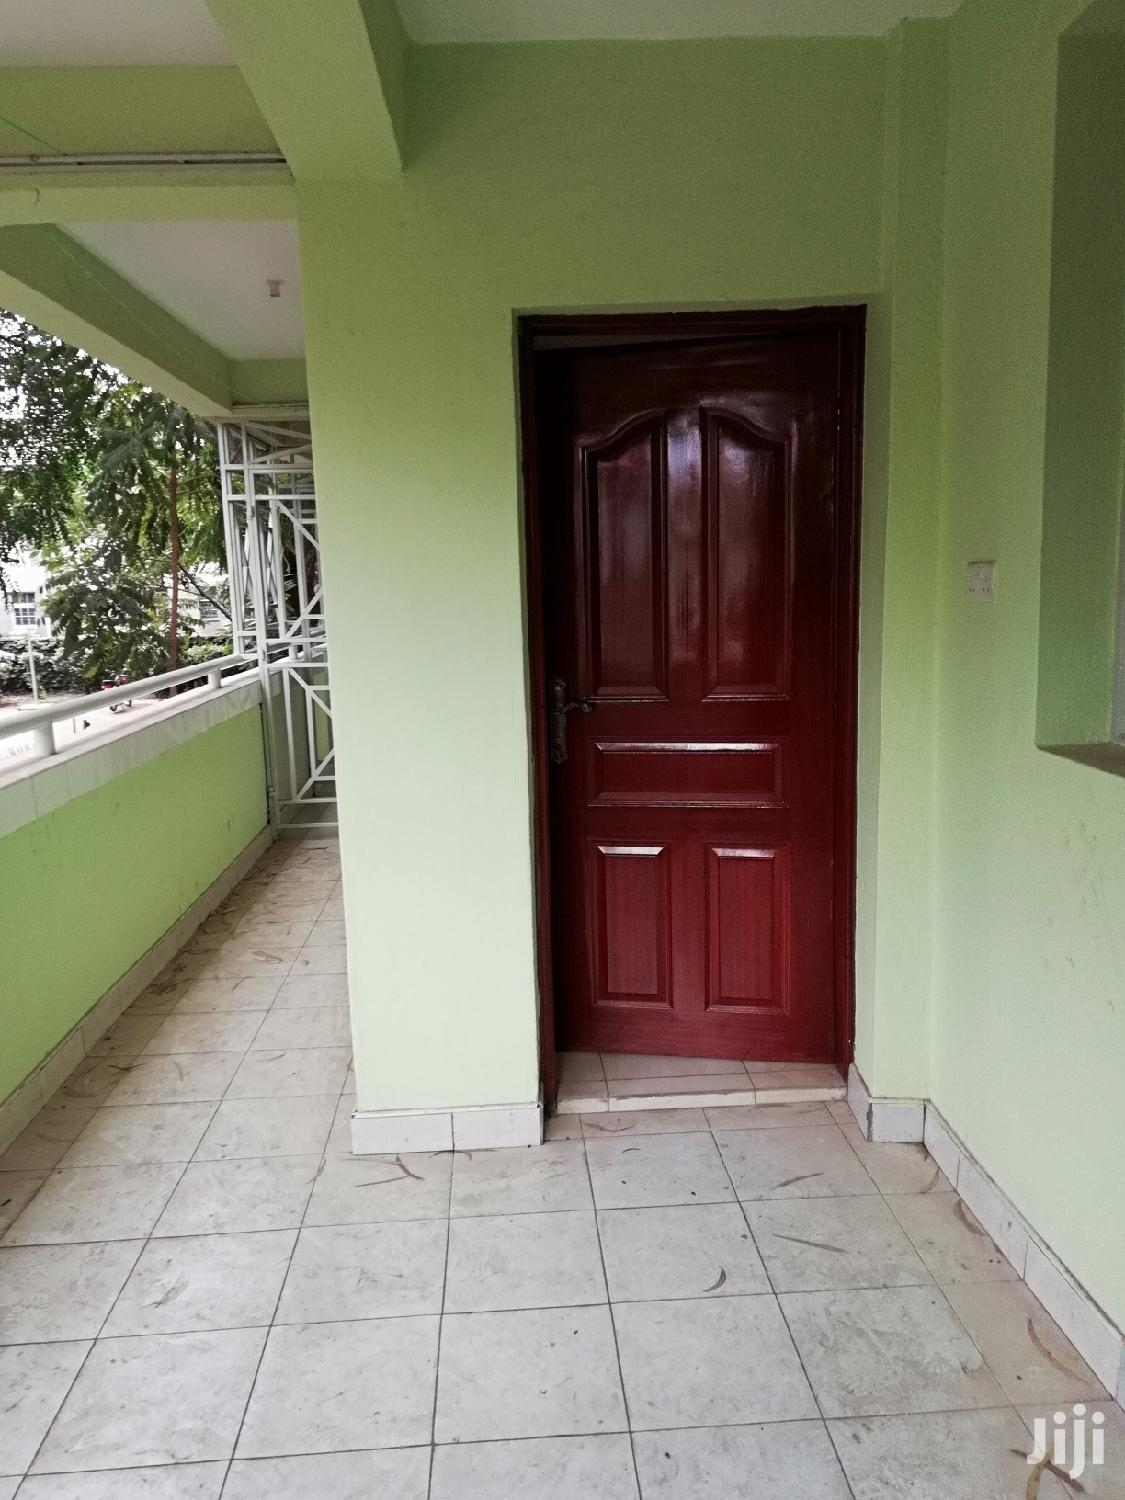 Property World,Sq With Kutche,Wardrobes and Very Secure